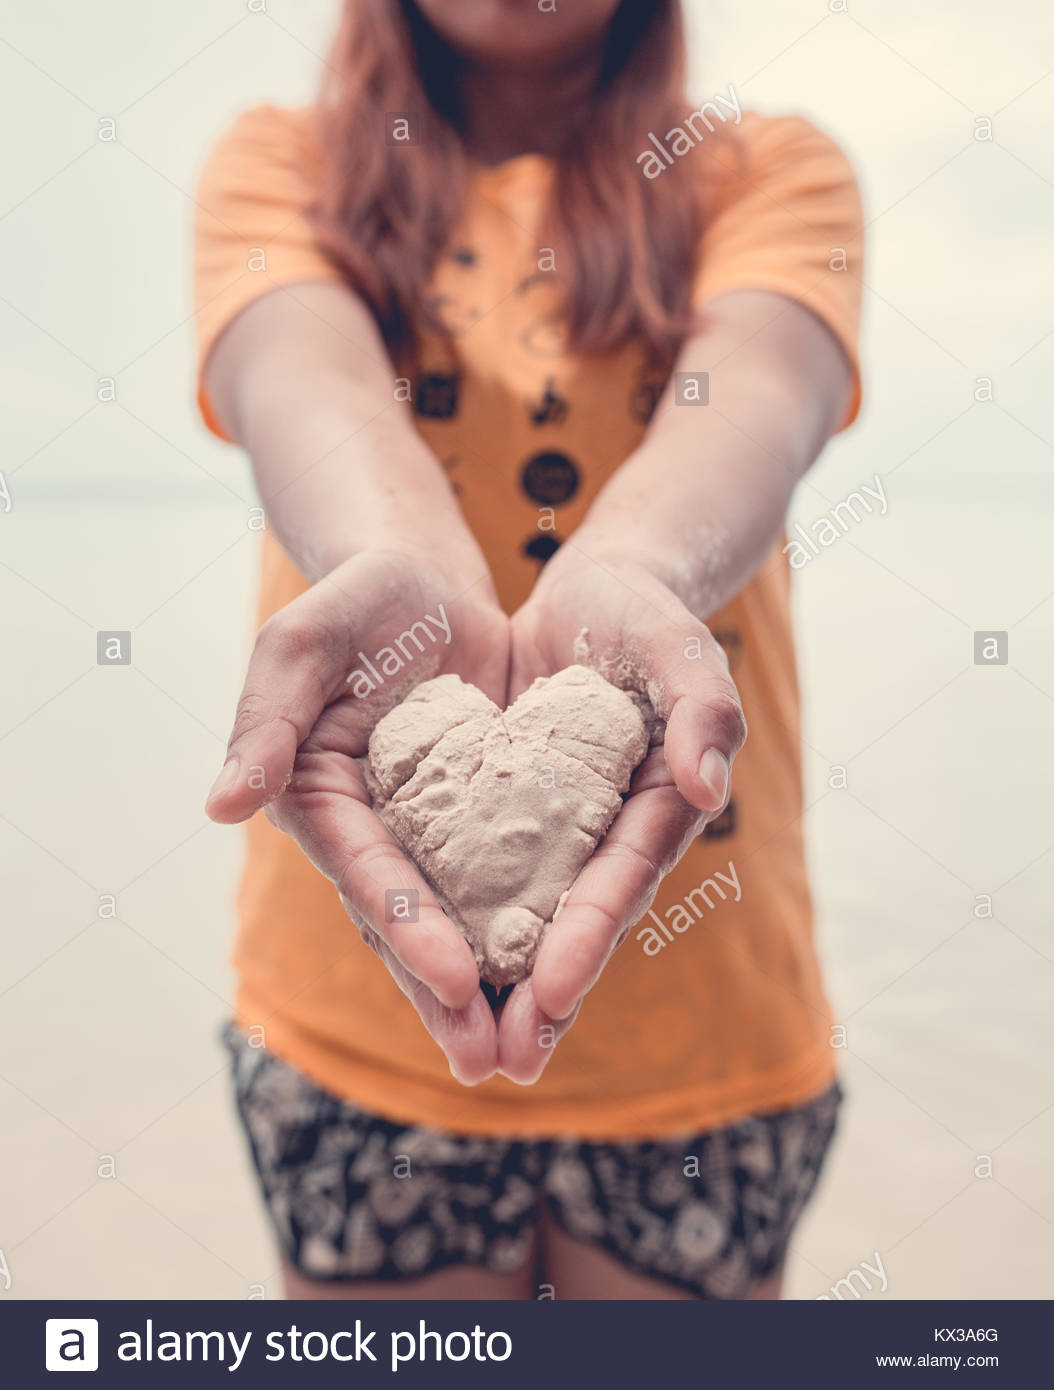 Girl holding sand in the shape of a heart, on a shore in the Philippines - Stock Image